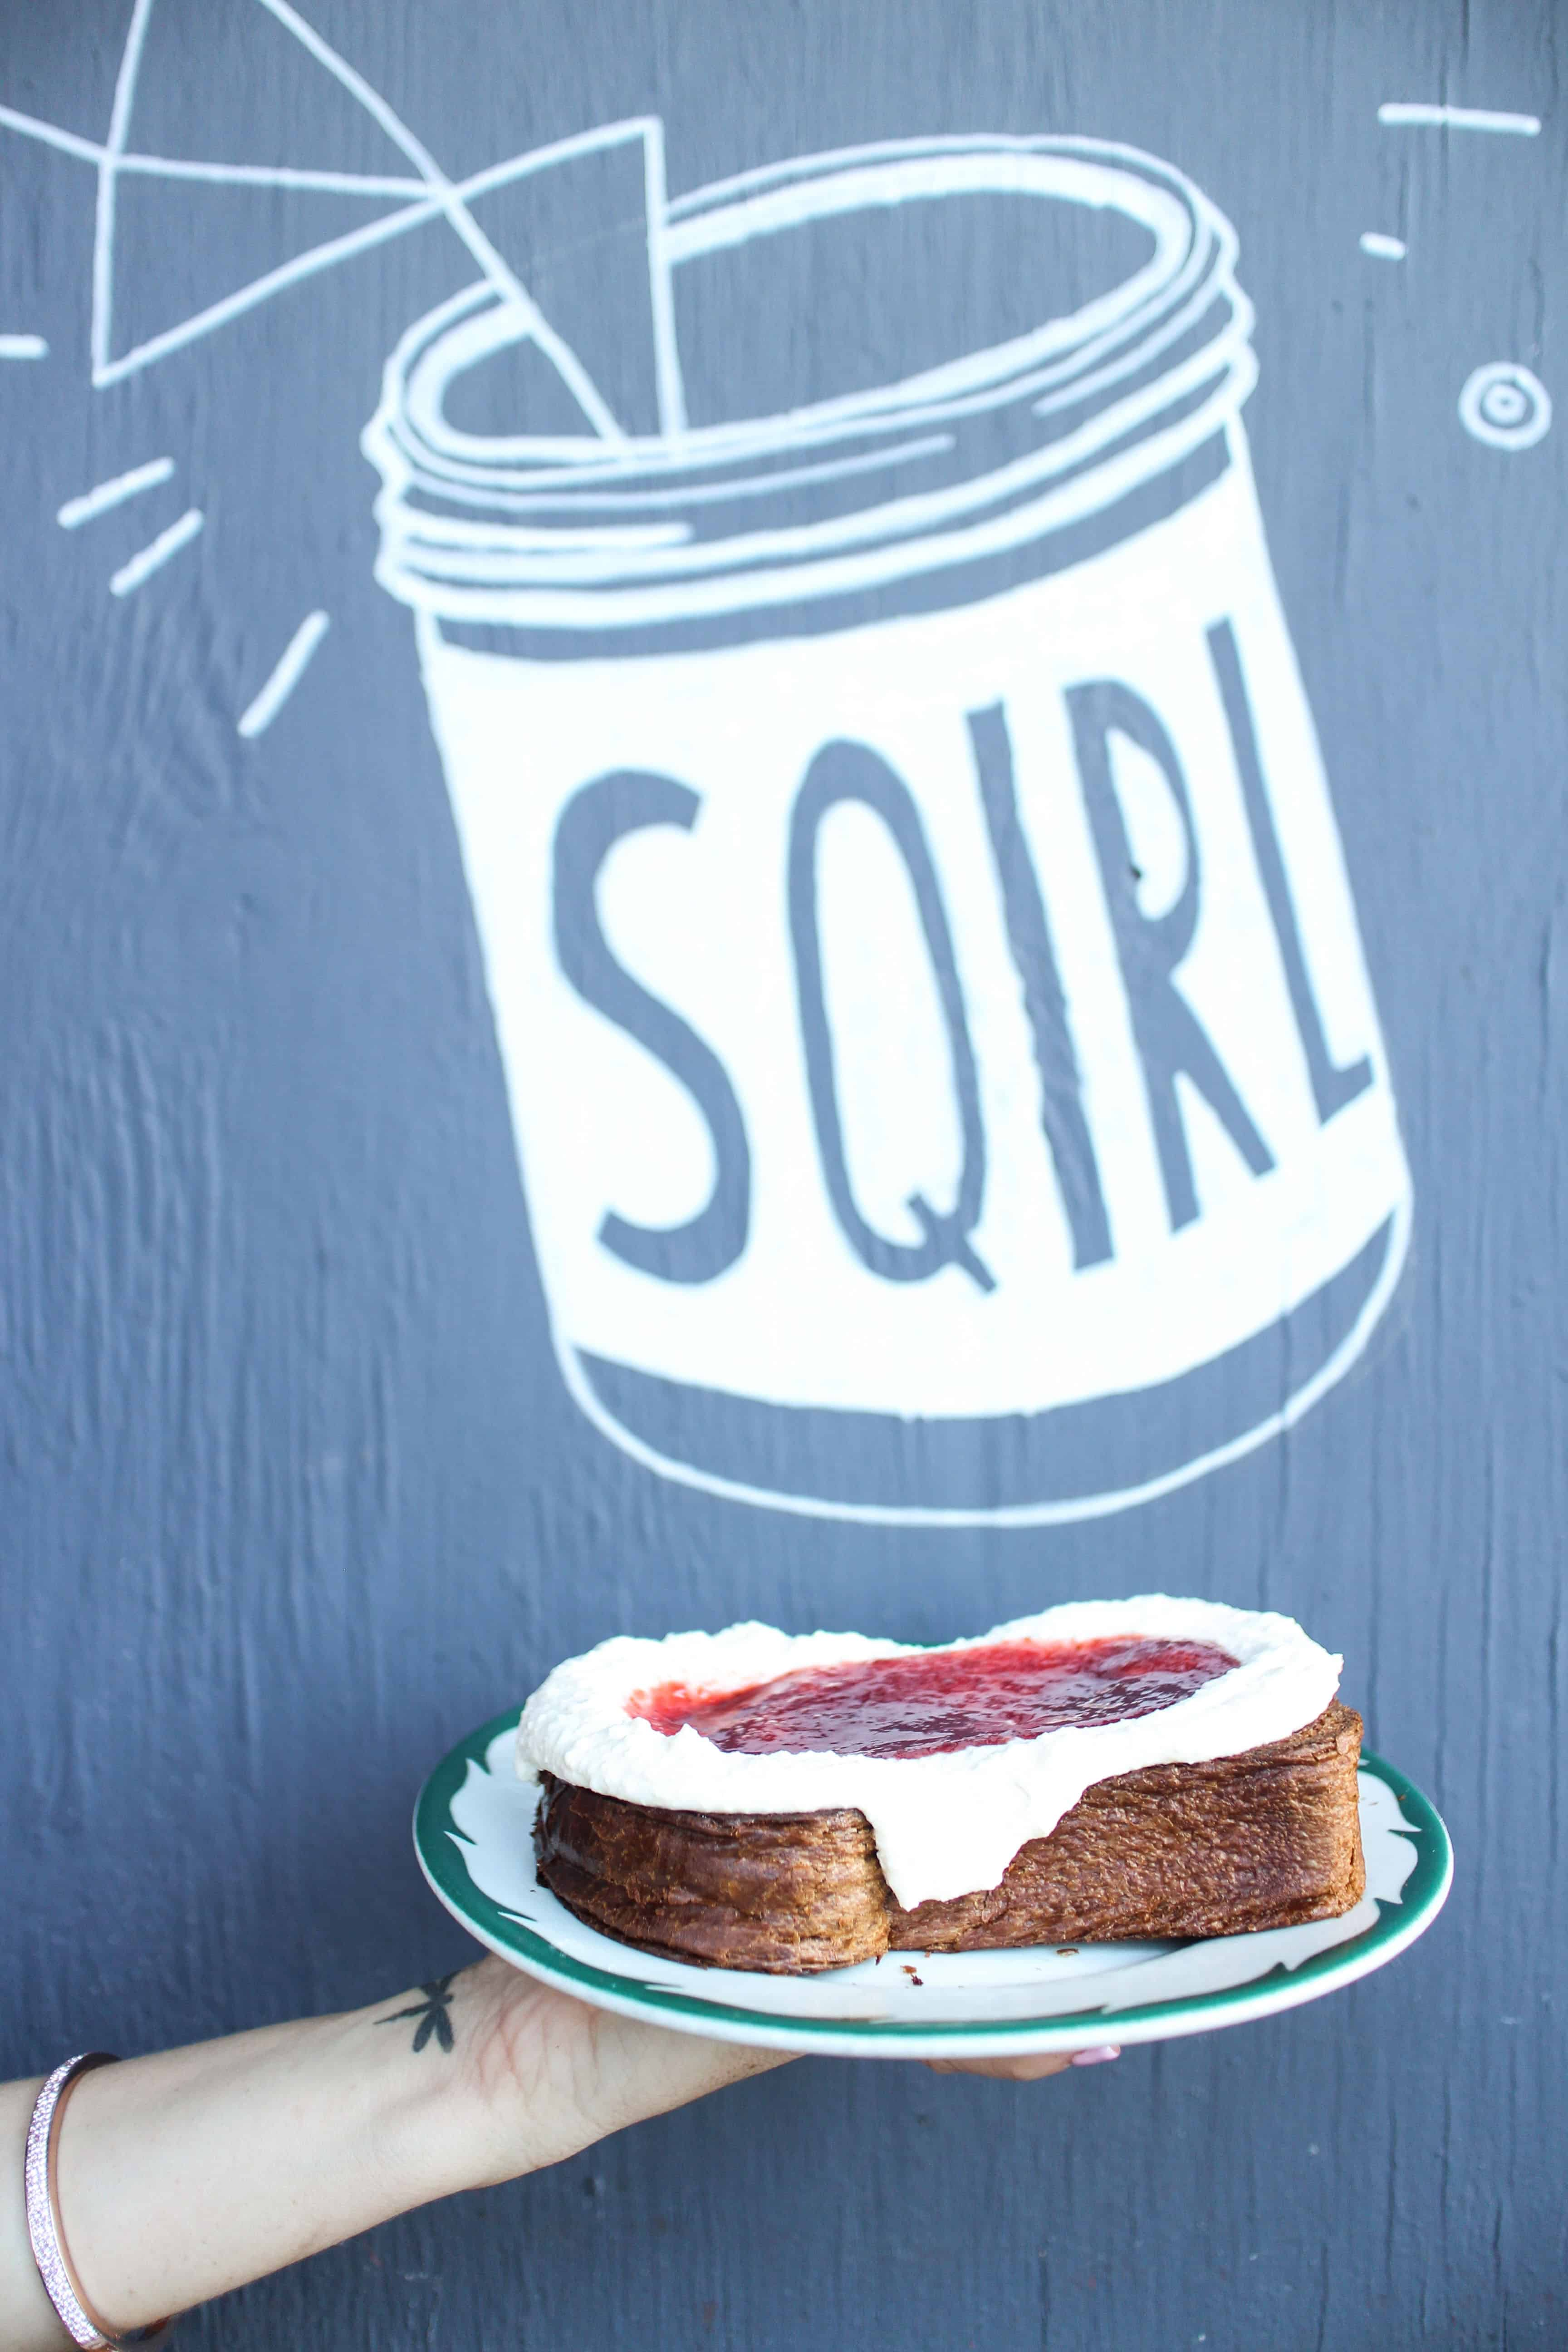 Sqirl (Sqirl Kitchen) - Los Angeles - Female Foodie